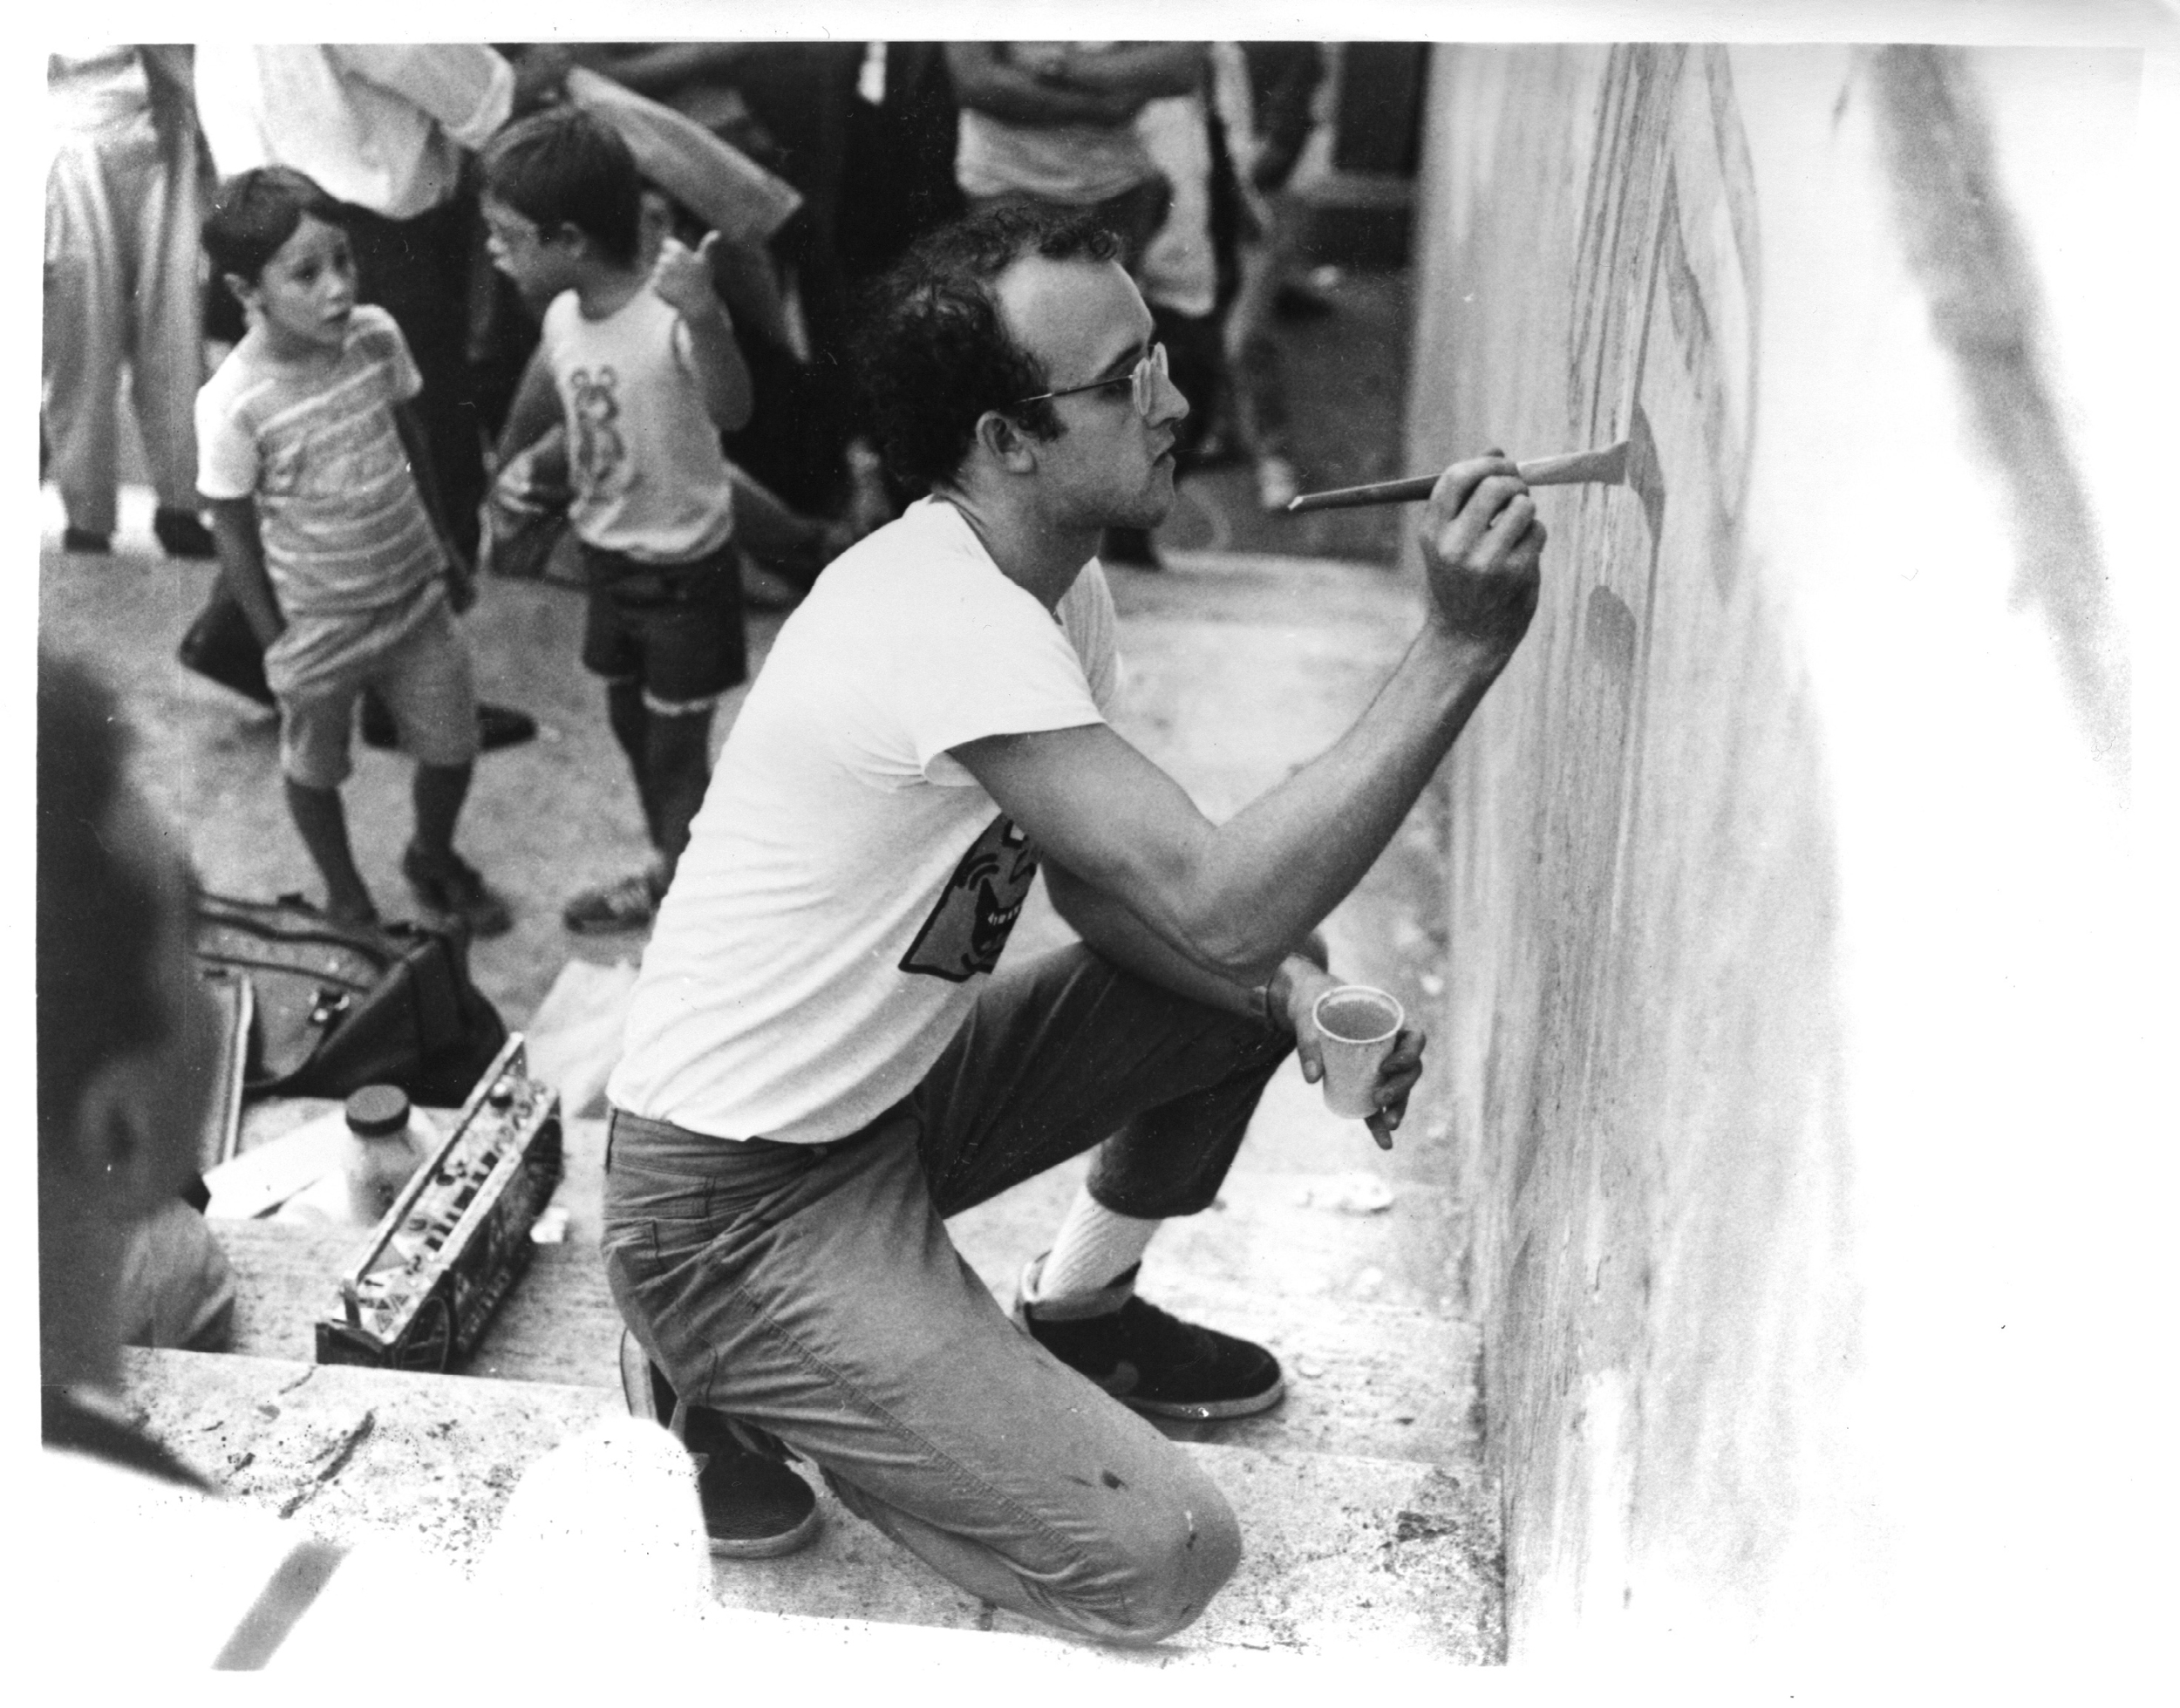 Artist Keith Haring working on a mural in Philadelphia